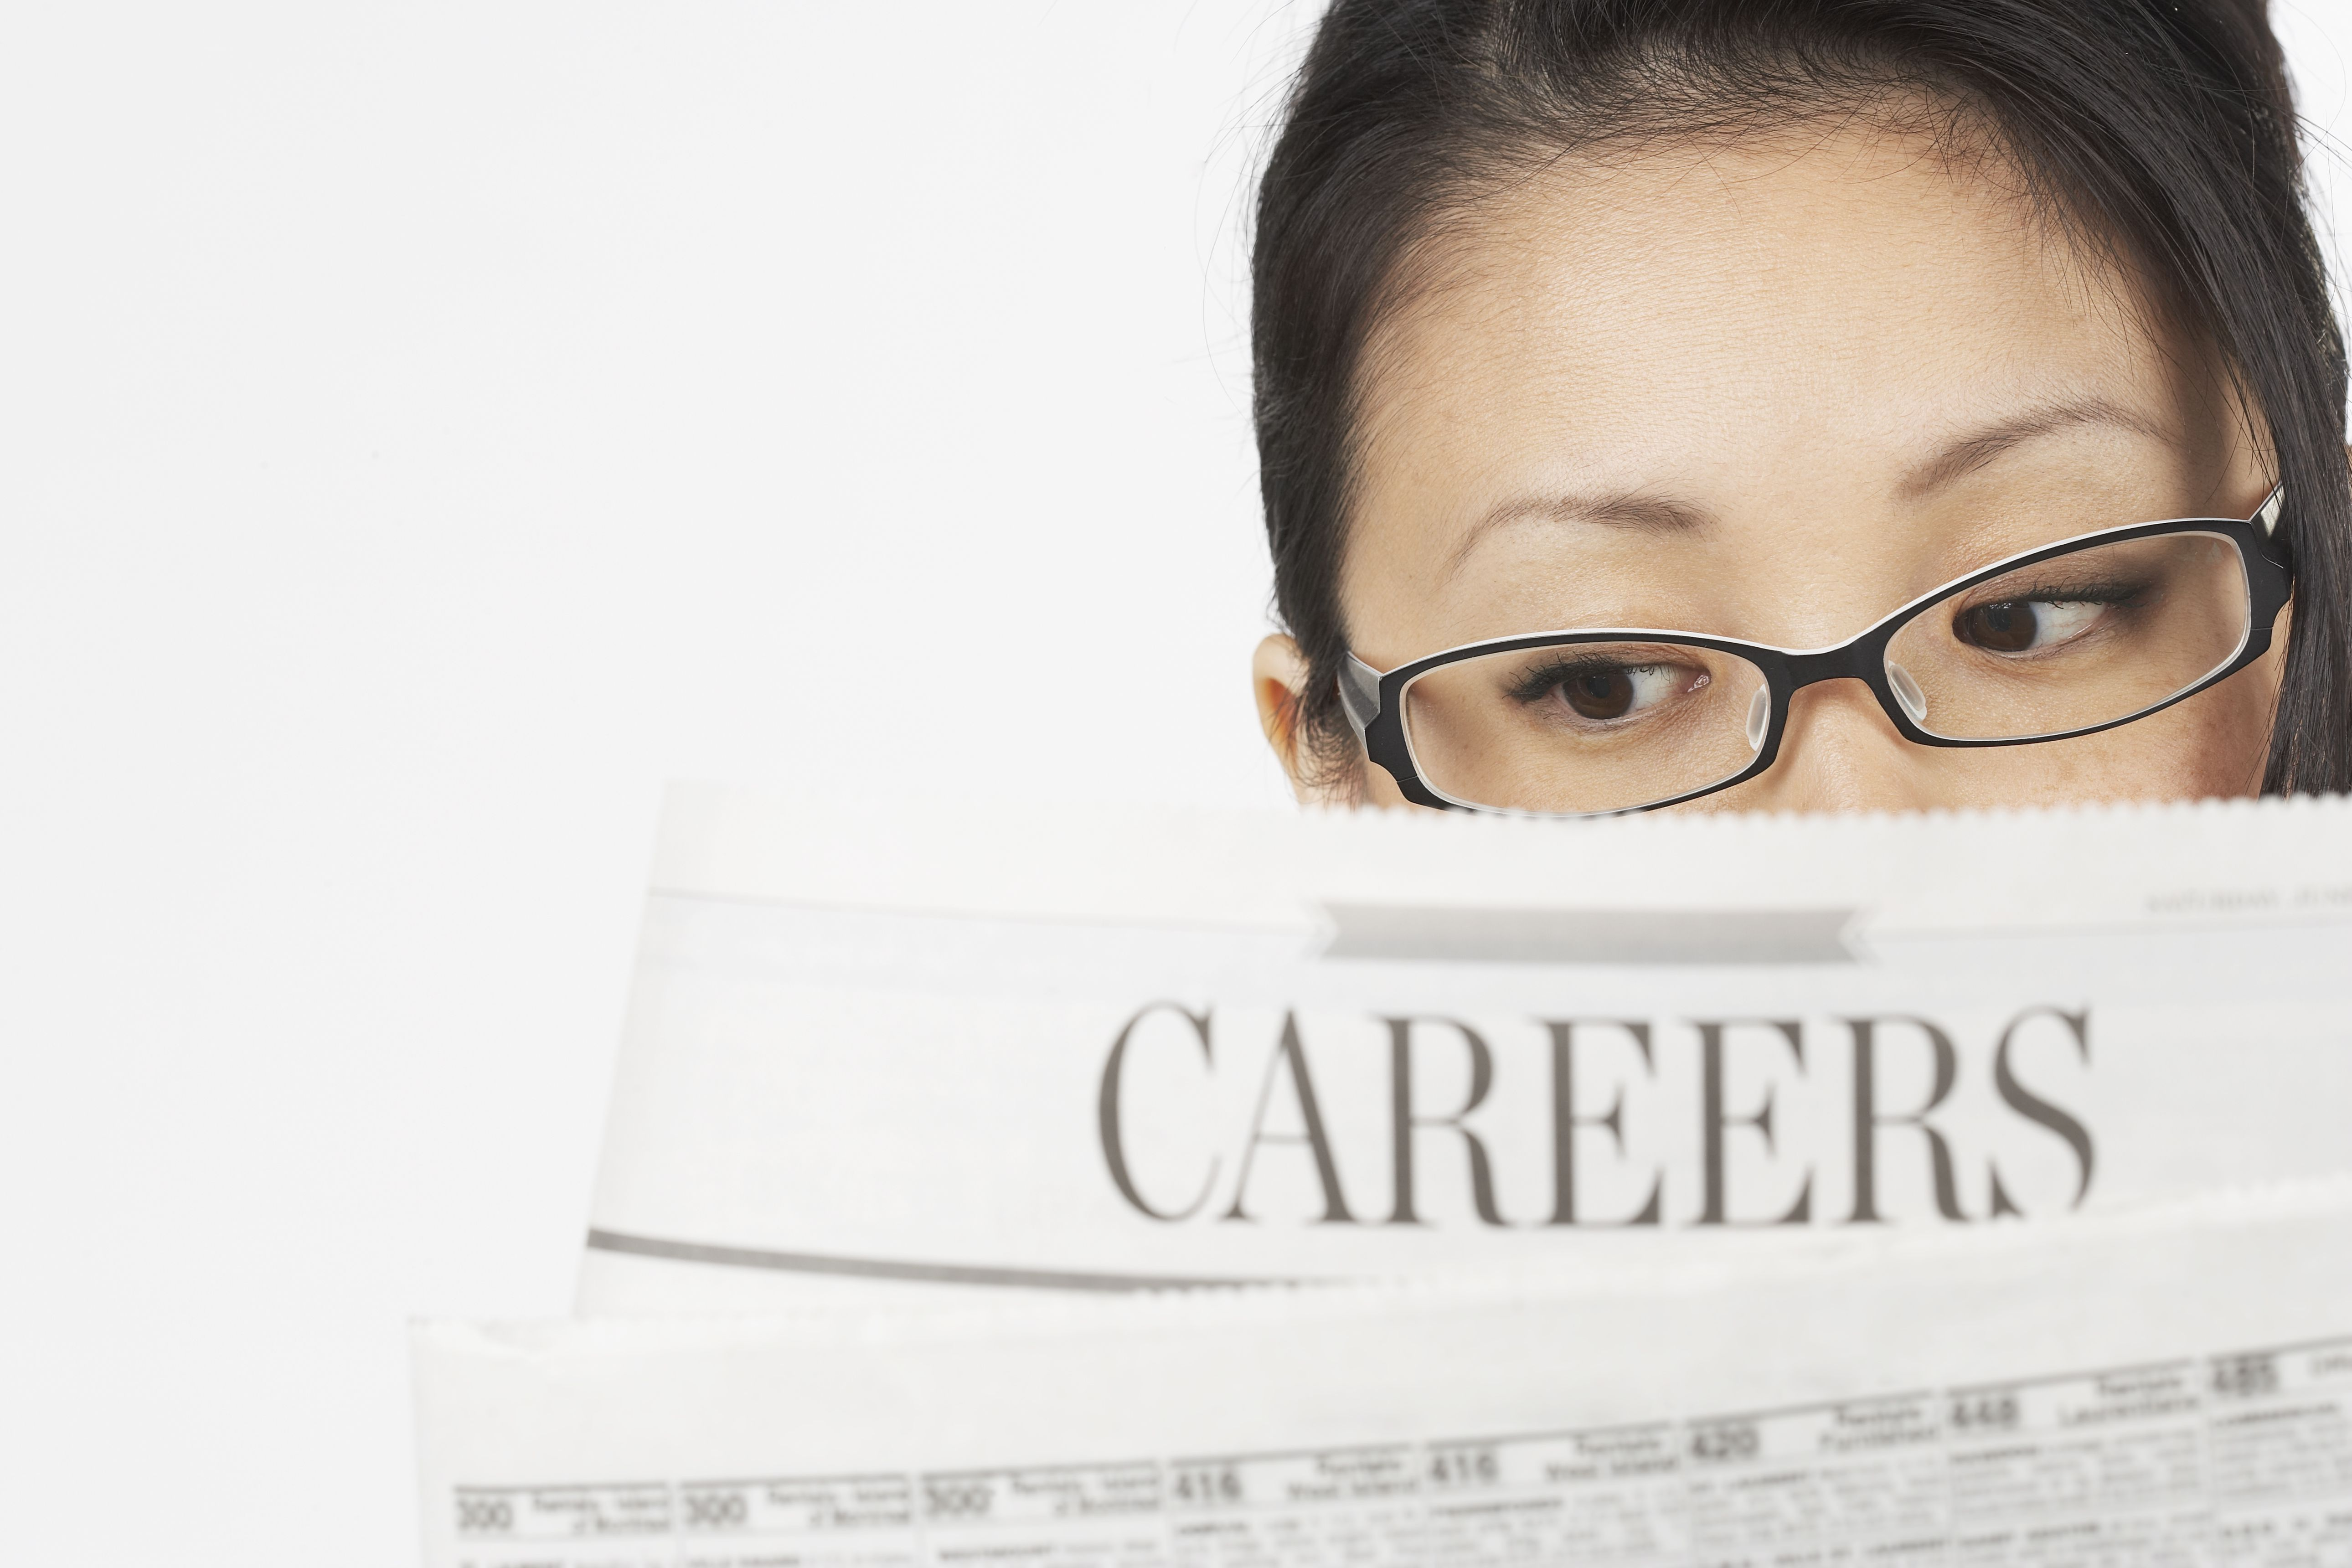 Want to Change Careers? Here's Your Guide to Getting Started